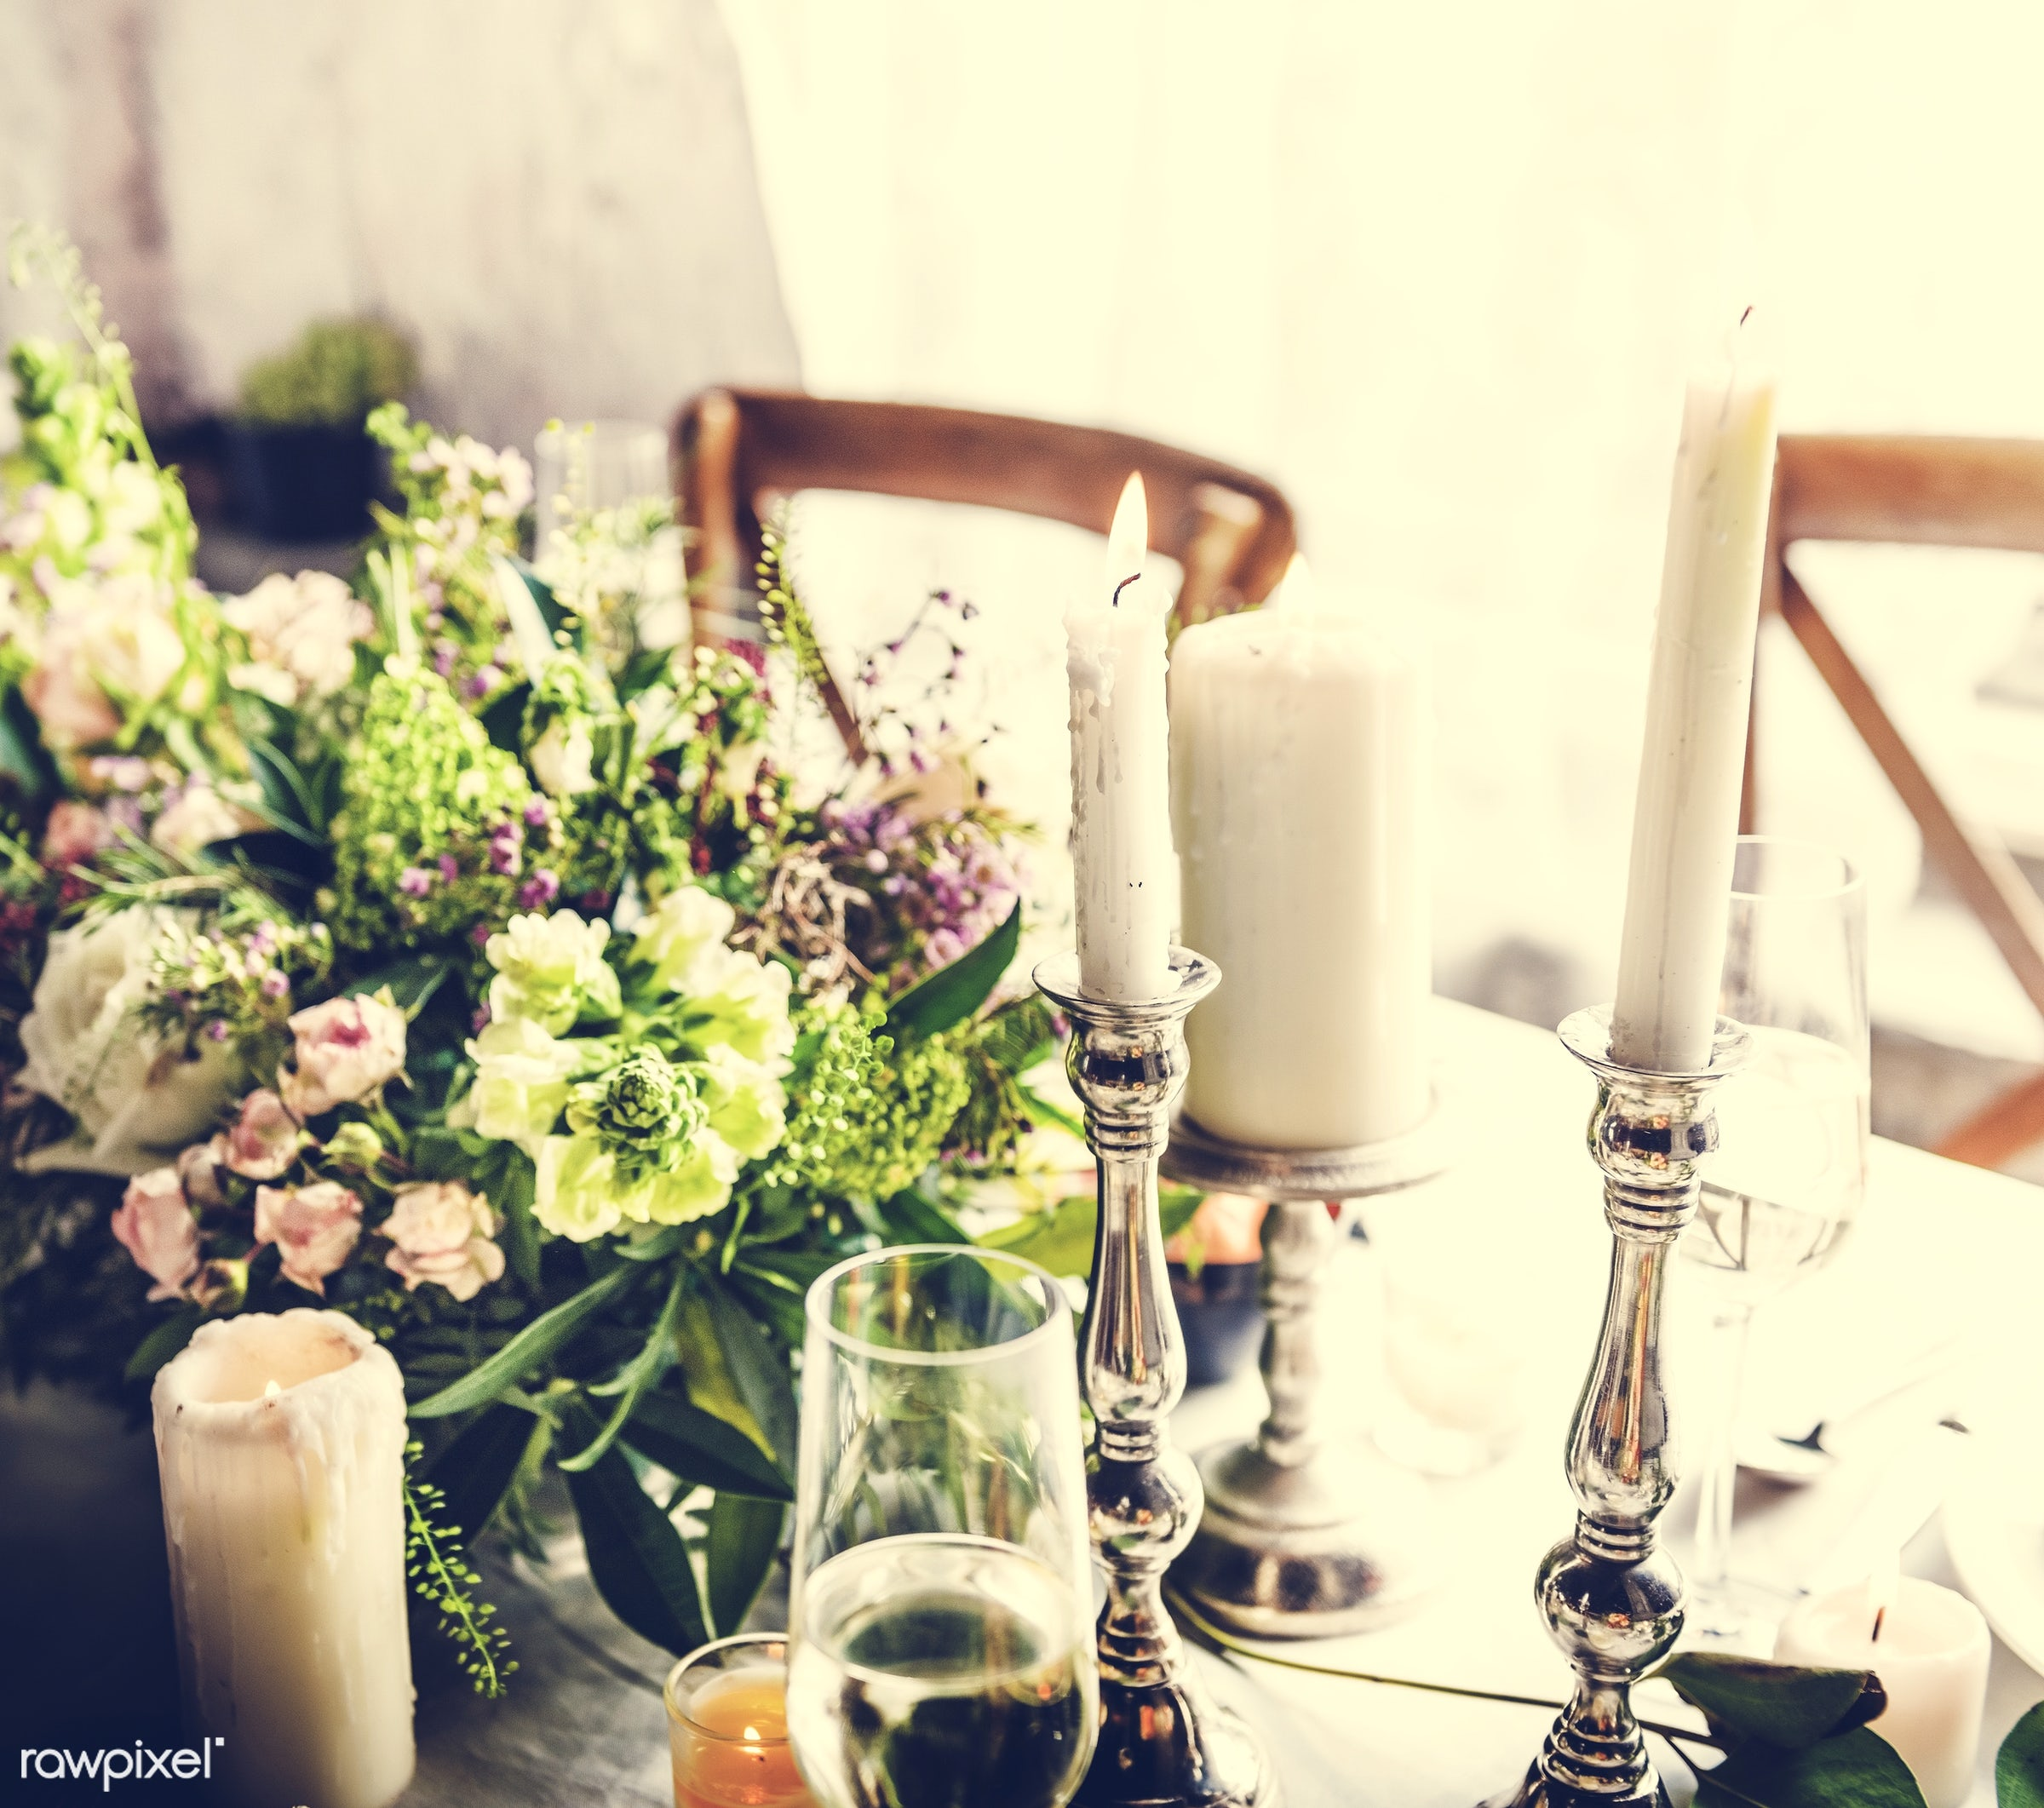 ornate, catering, silverware, restaurant, party, setting, decor, candle, tablecloth, event, banquet, lunch, meal, romance,...